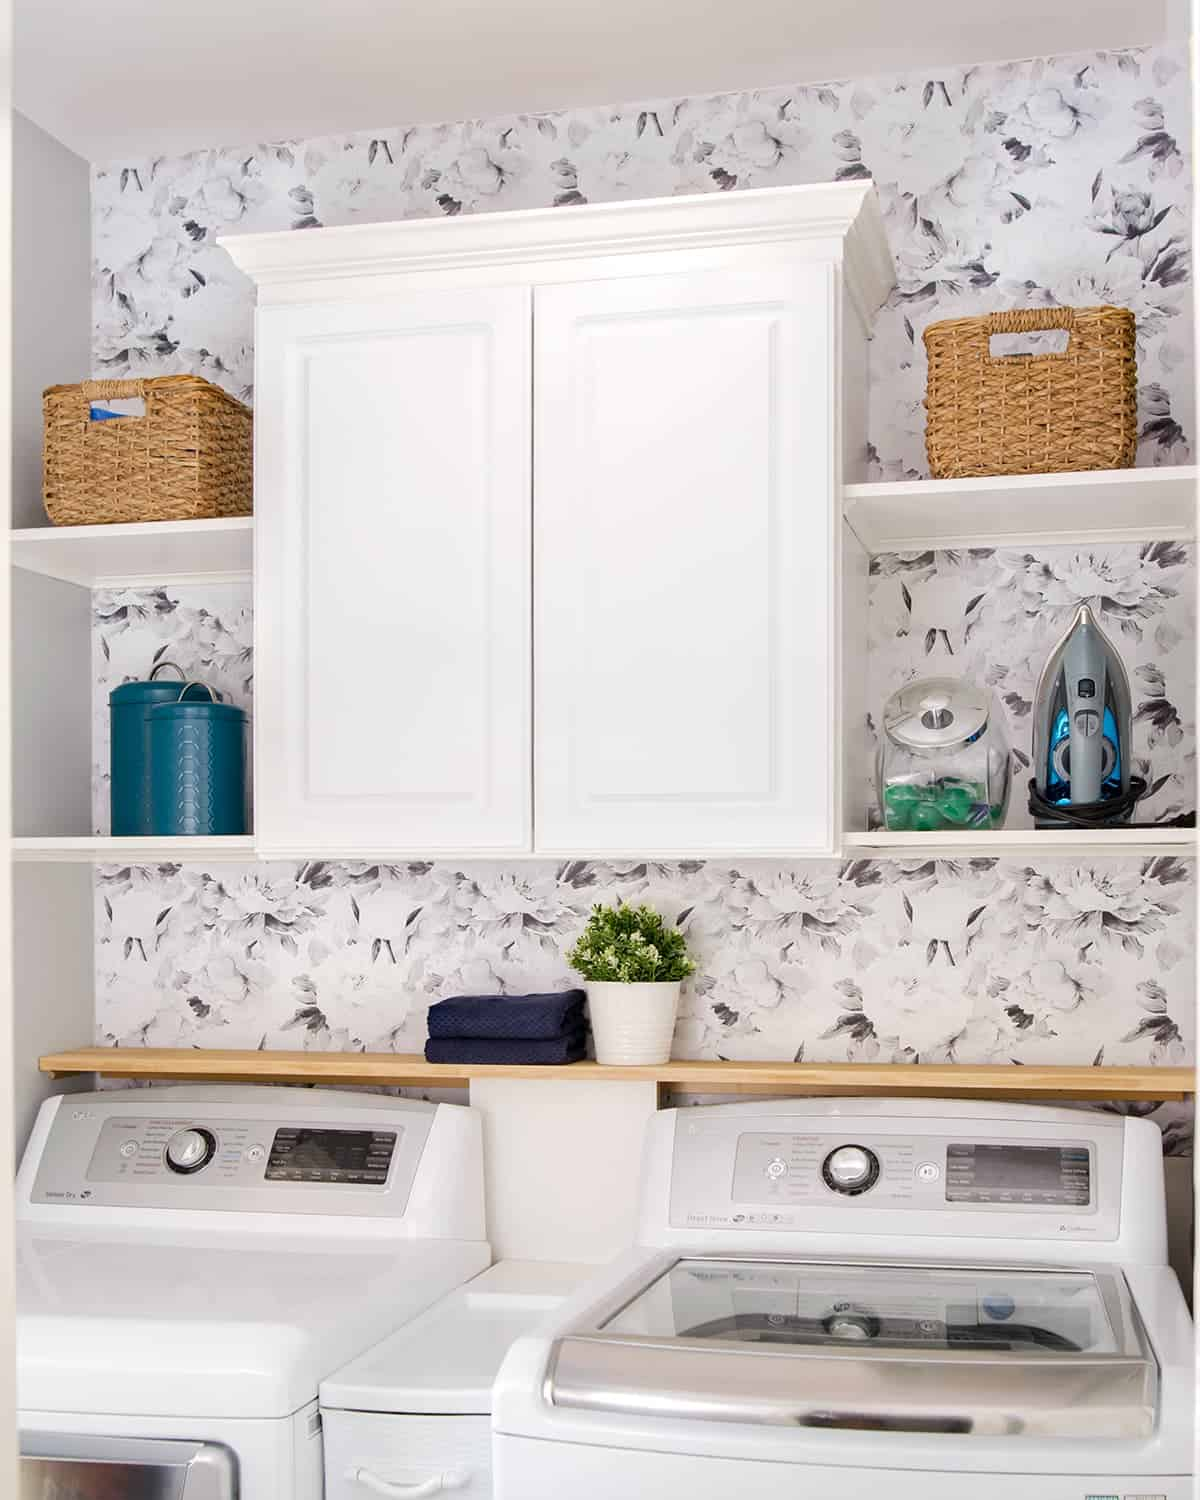 Laundry room cabinet over floral wallpaper. Shelves with basket organizers and coordinating jars and canisters.